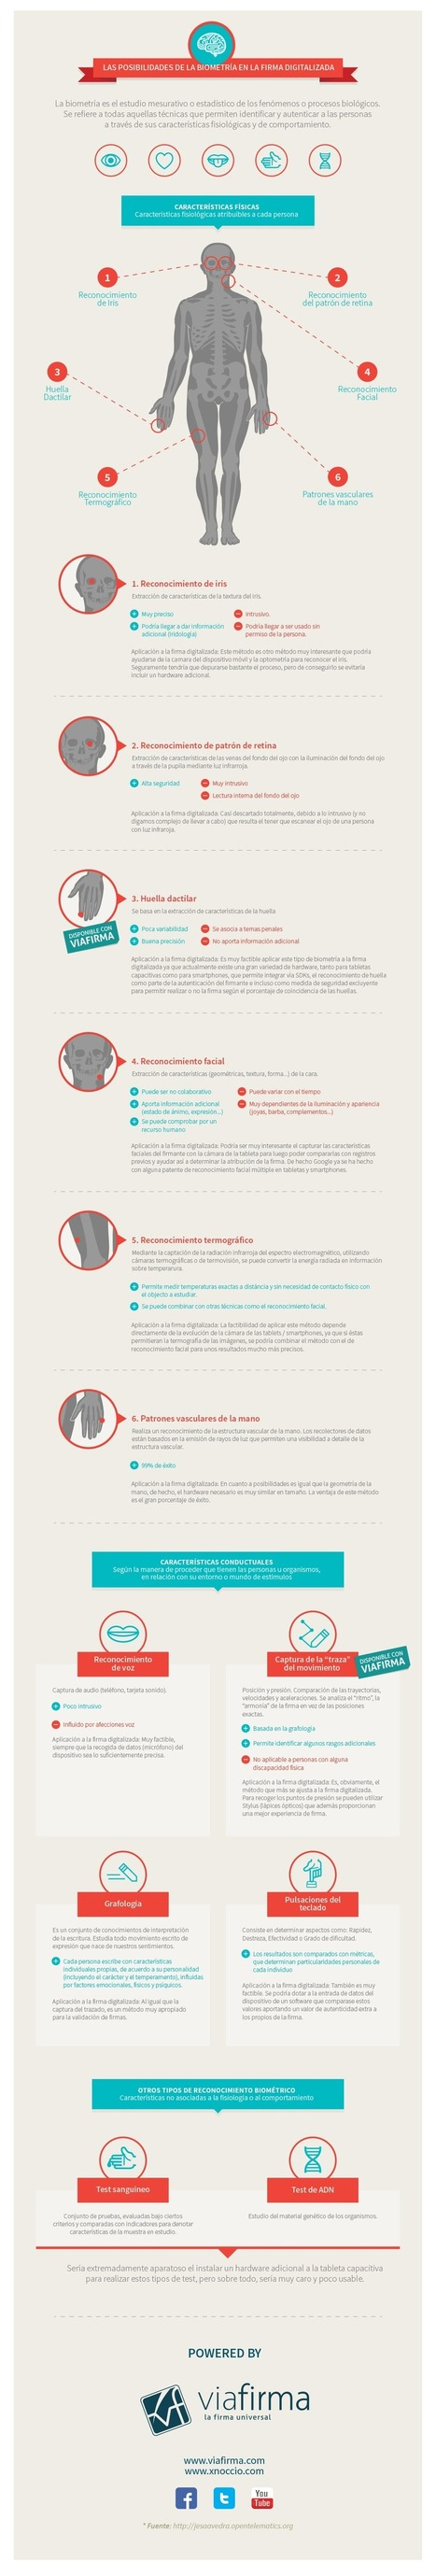 La biometría como firma digital #infografia #infographic | Managing Technology and Talent for Learning & Innovation | Scoop.it